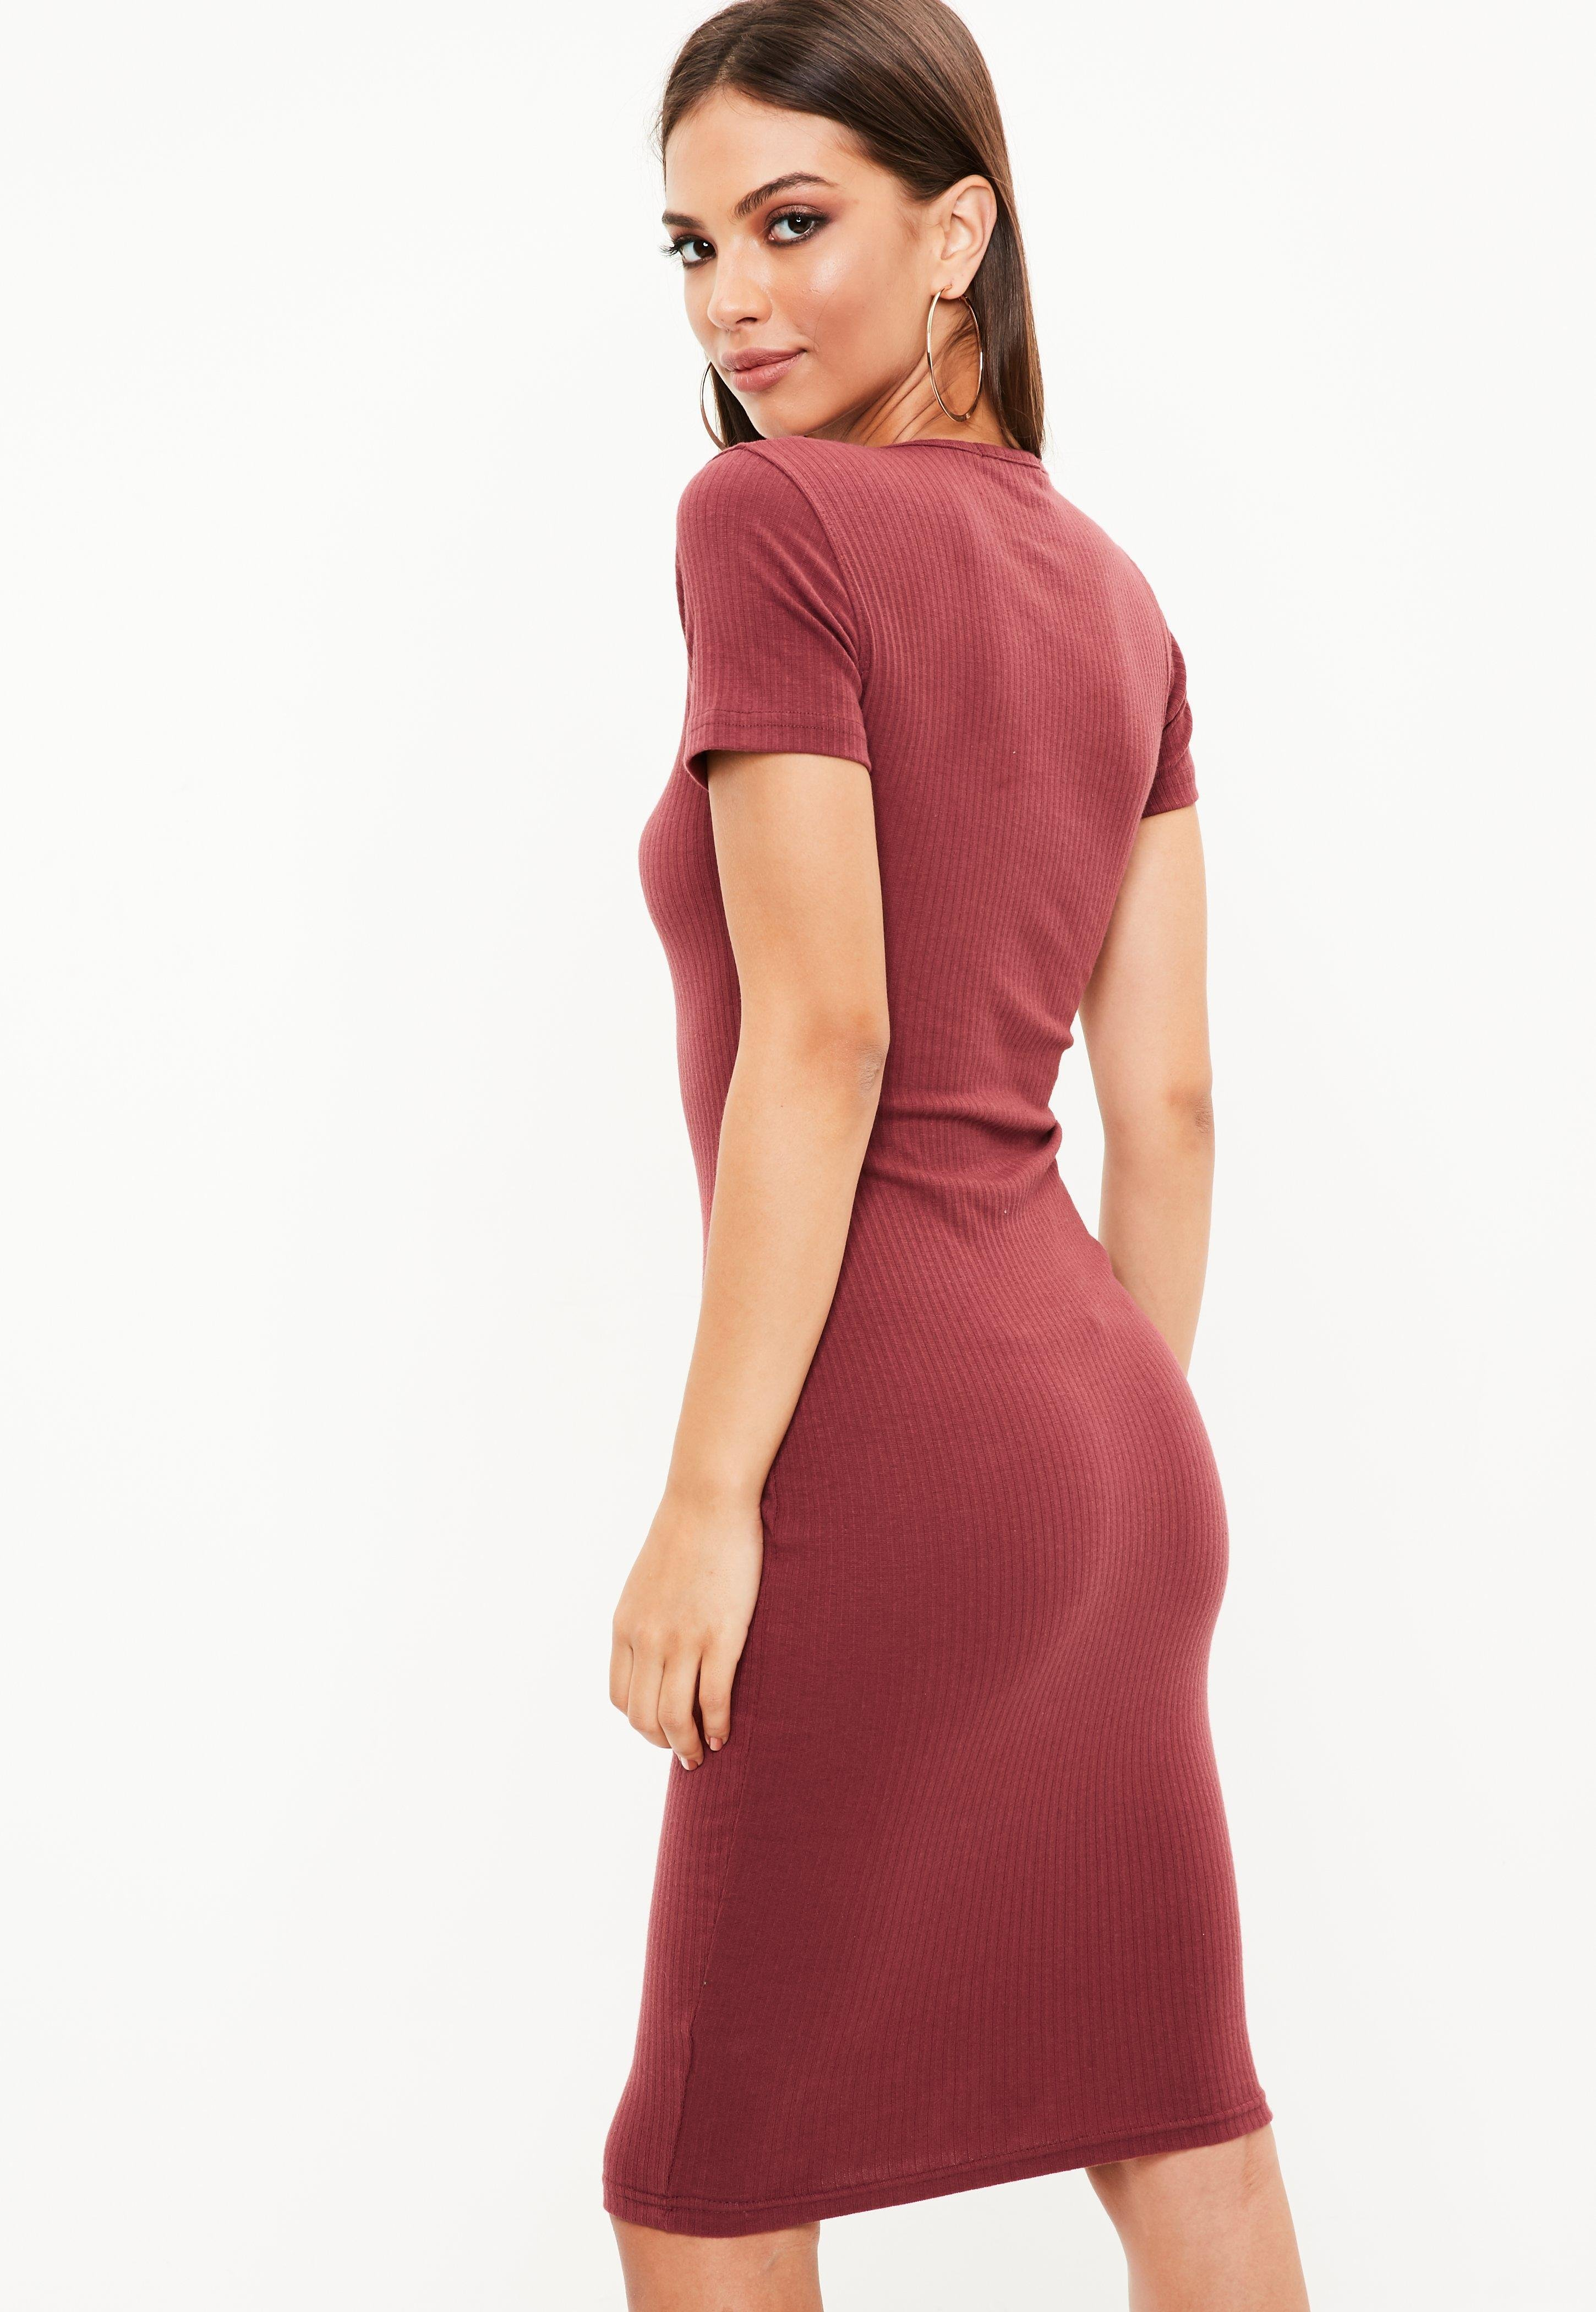 e04d6f0c5785 Lyst - Missguided Burgundy Short Sleeve Ribbed Midi Dress in Red